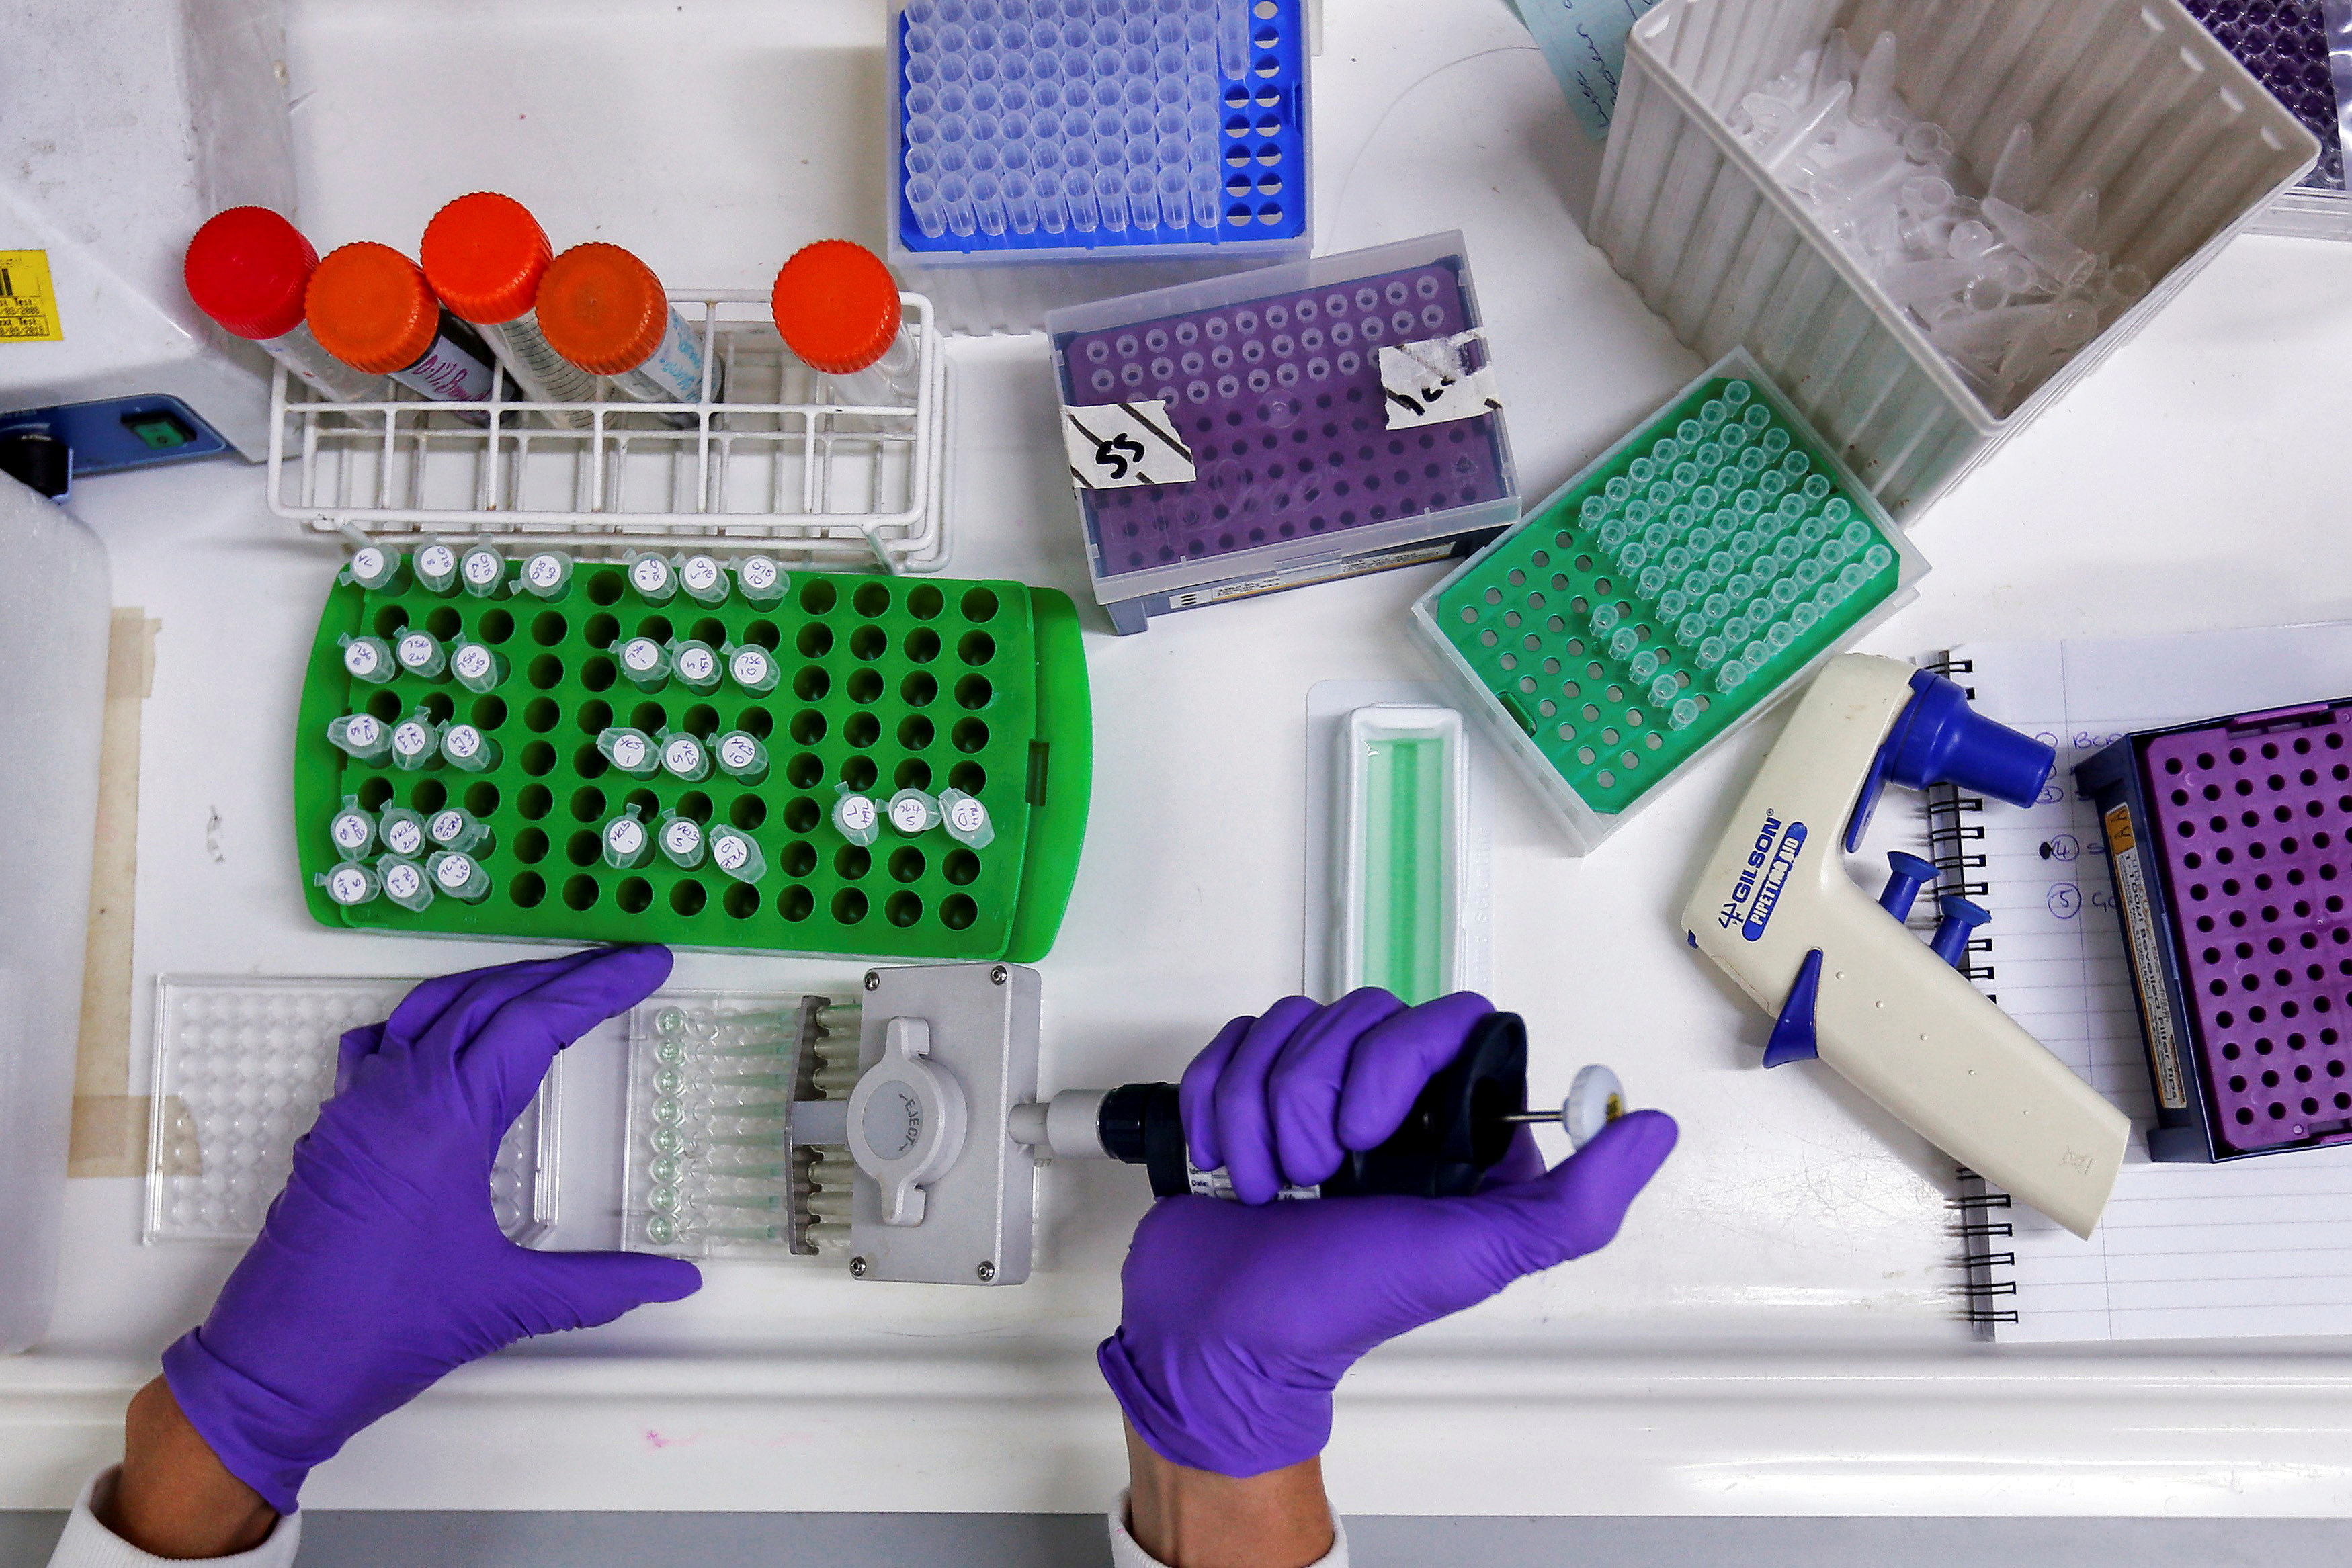 FILE PHOTO: A scientist prepares protein samples for analysis in a lab at the Institute of Cancer Research in Sutton, July 15, 2013. REUTERS/Stefan Wermuth/File Photo